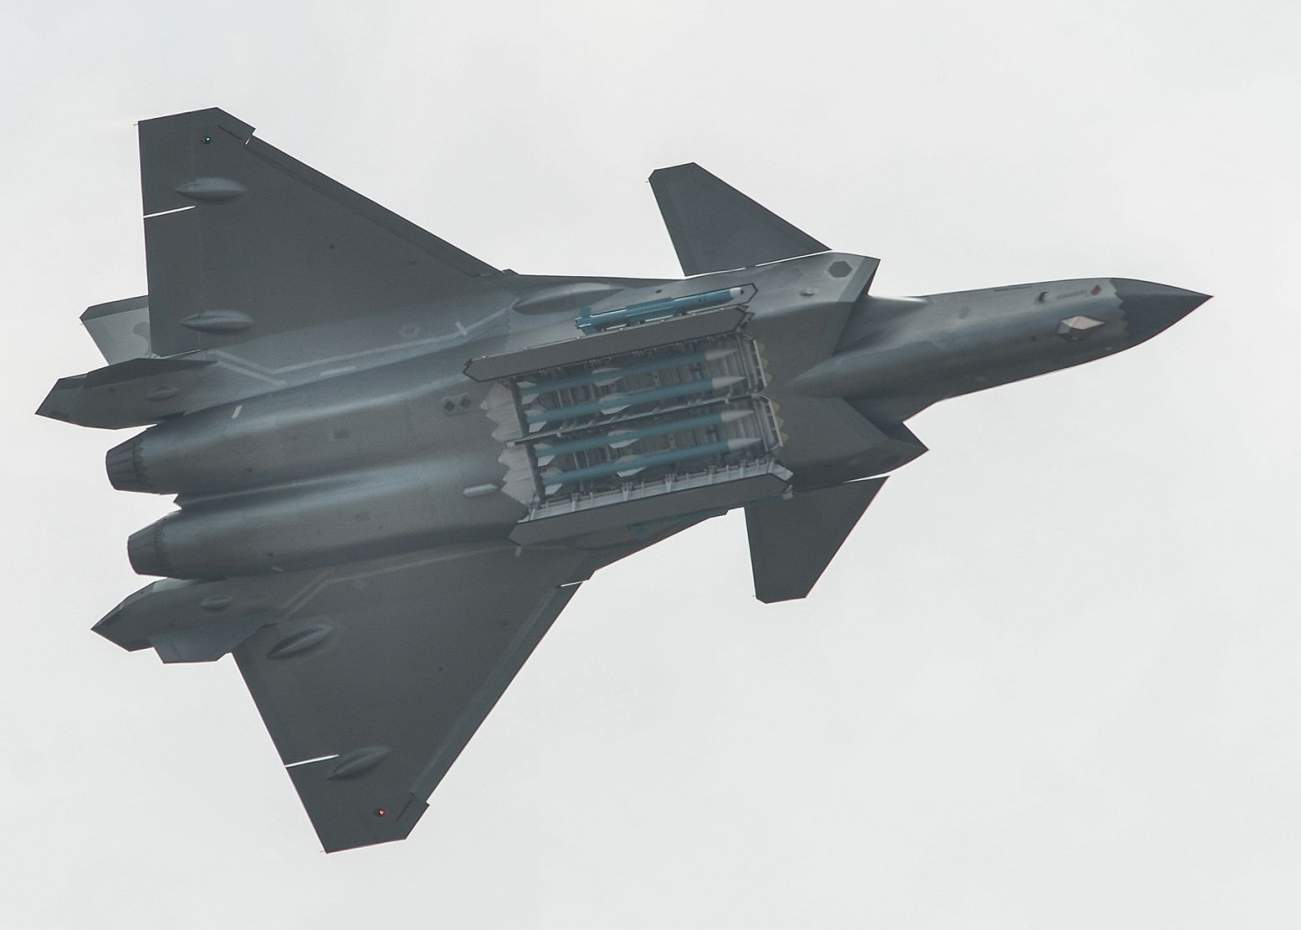 By emperornie - J-20 fighter, CC BY-SA 2.0, https://commons.wikimedia.org/w/index.php?curid=74537217